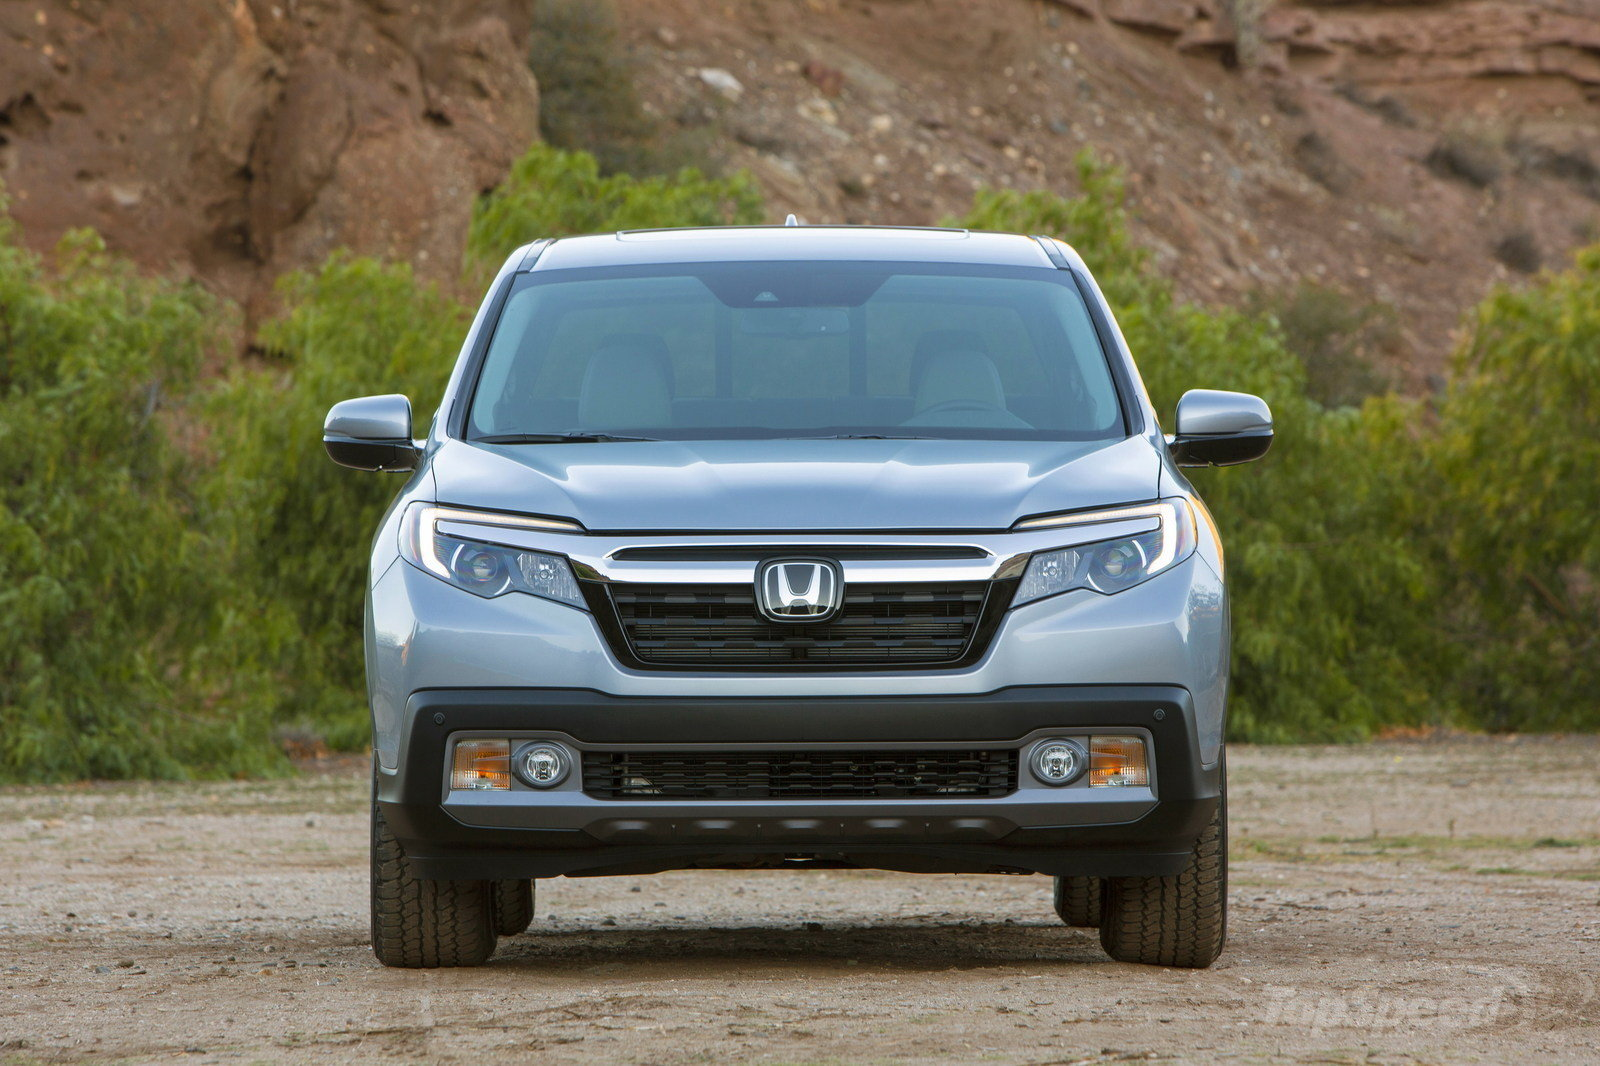 2016 honda ridgeline picture 661617 truck review top speed. Black Bedroom Furniture Sets. Home Design Ideas